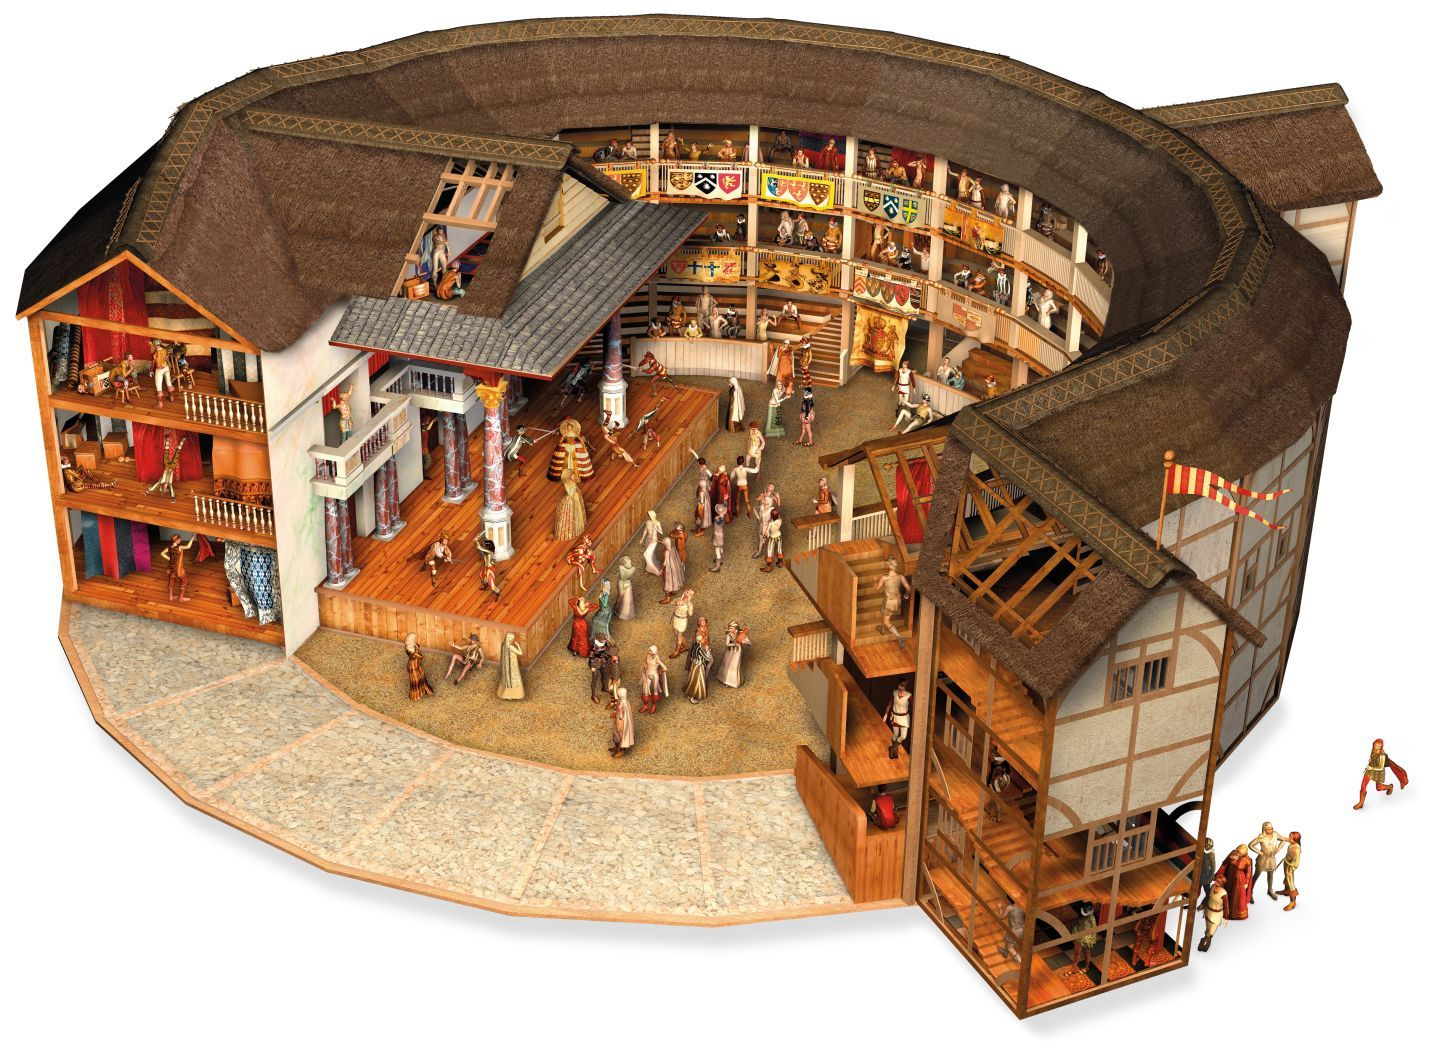 "an analysis of the features of the globe theater in the elizabethan era William shakespeare, was born in elizabethan england in the 16th century   his plays were performed in london at the globe theater and in stratford at the  new  on the secrets of the town and to set the stage since typically this play  features a  one, forcing the reader to complete the ""sense"" and subliminal  meaning."